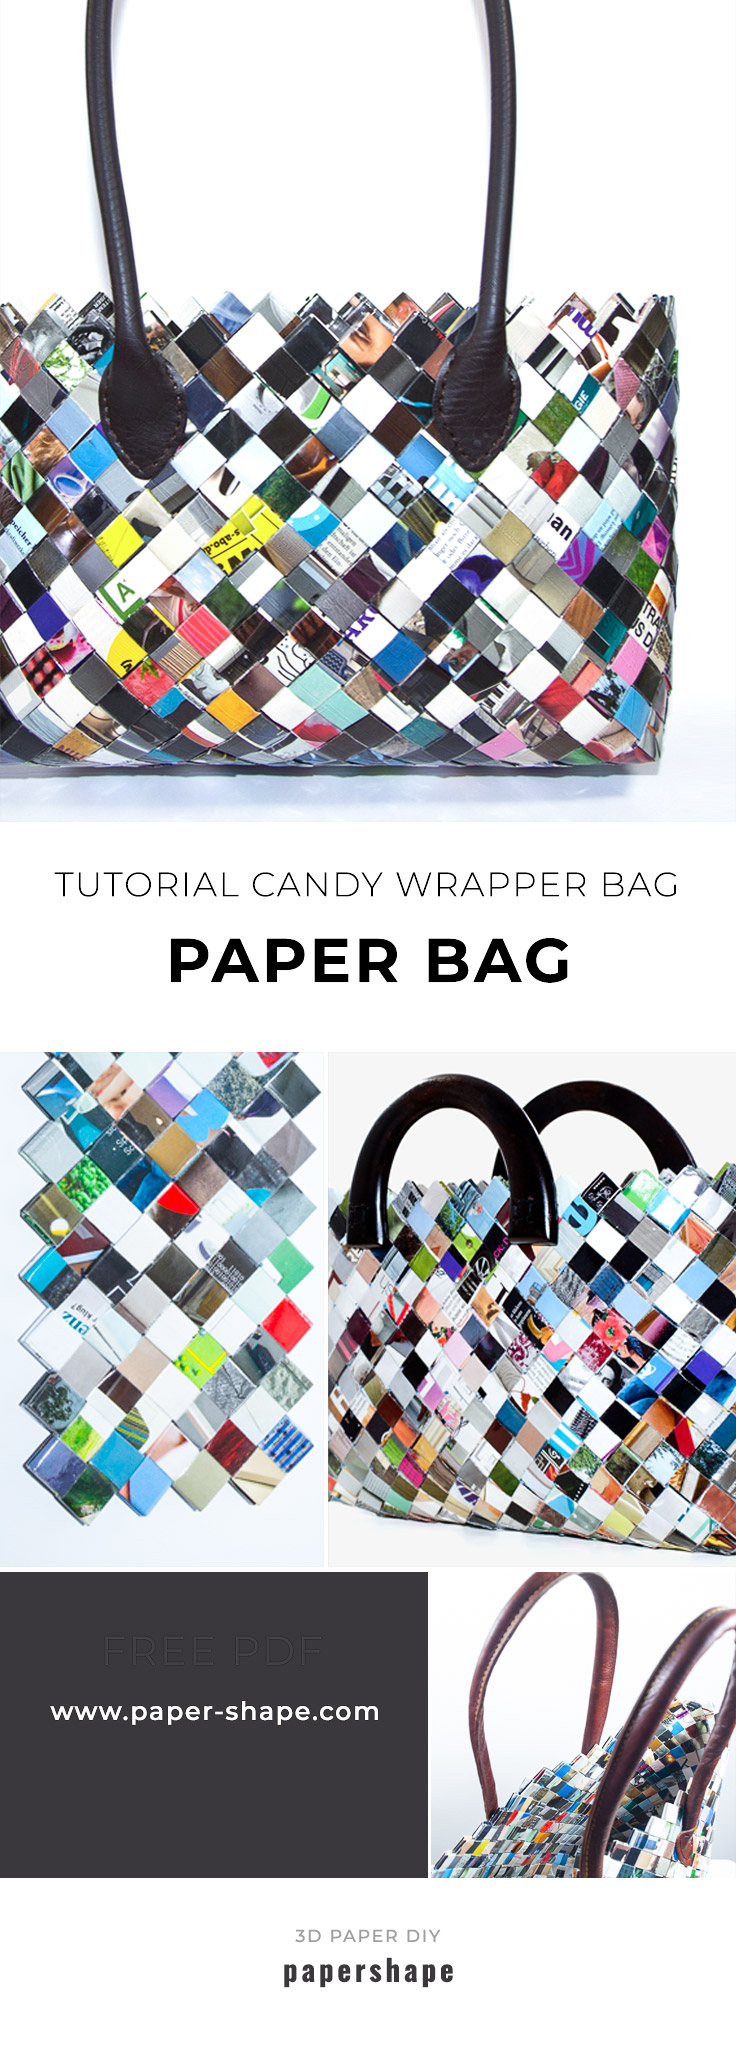 tutorial: candy wrapper bag from magazine leftovers diy #papershape